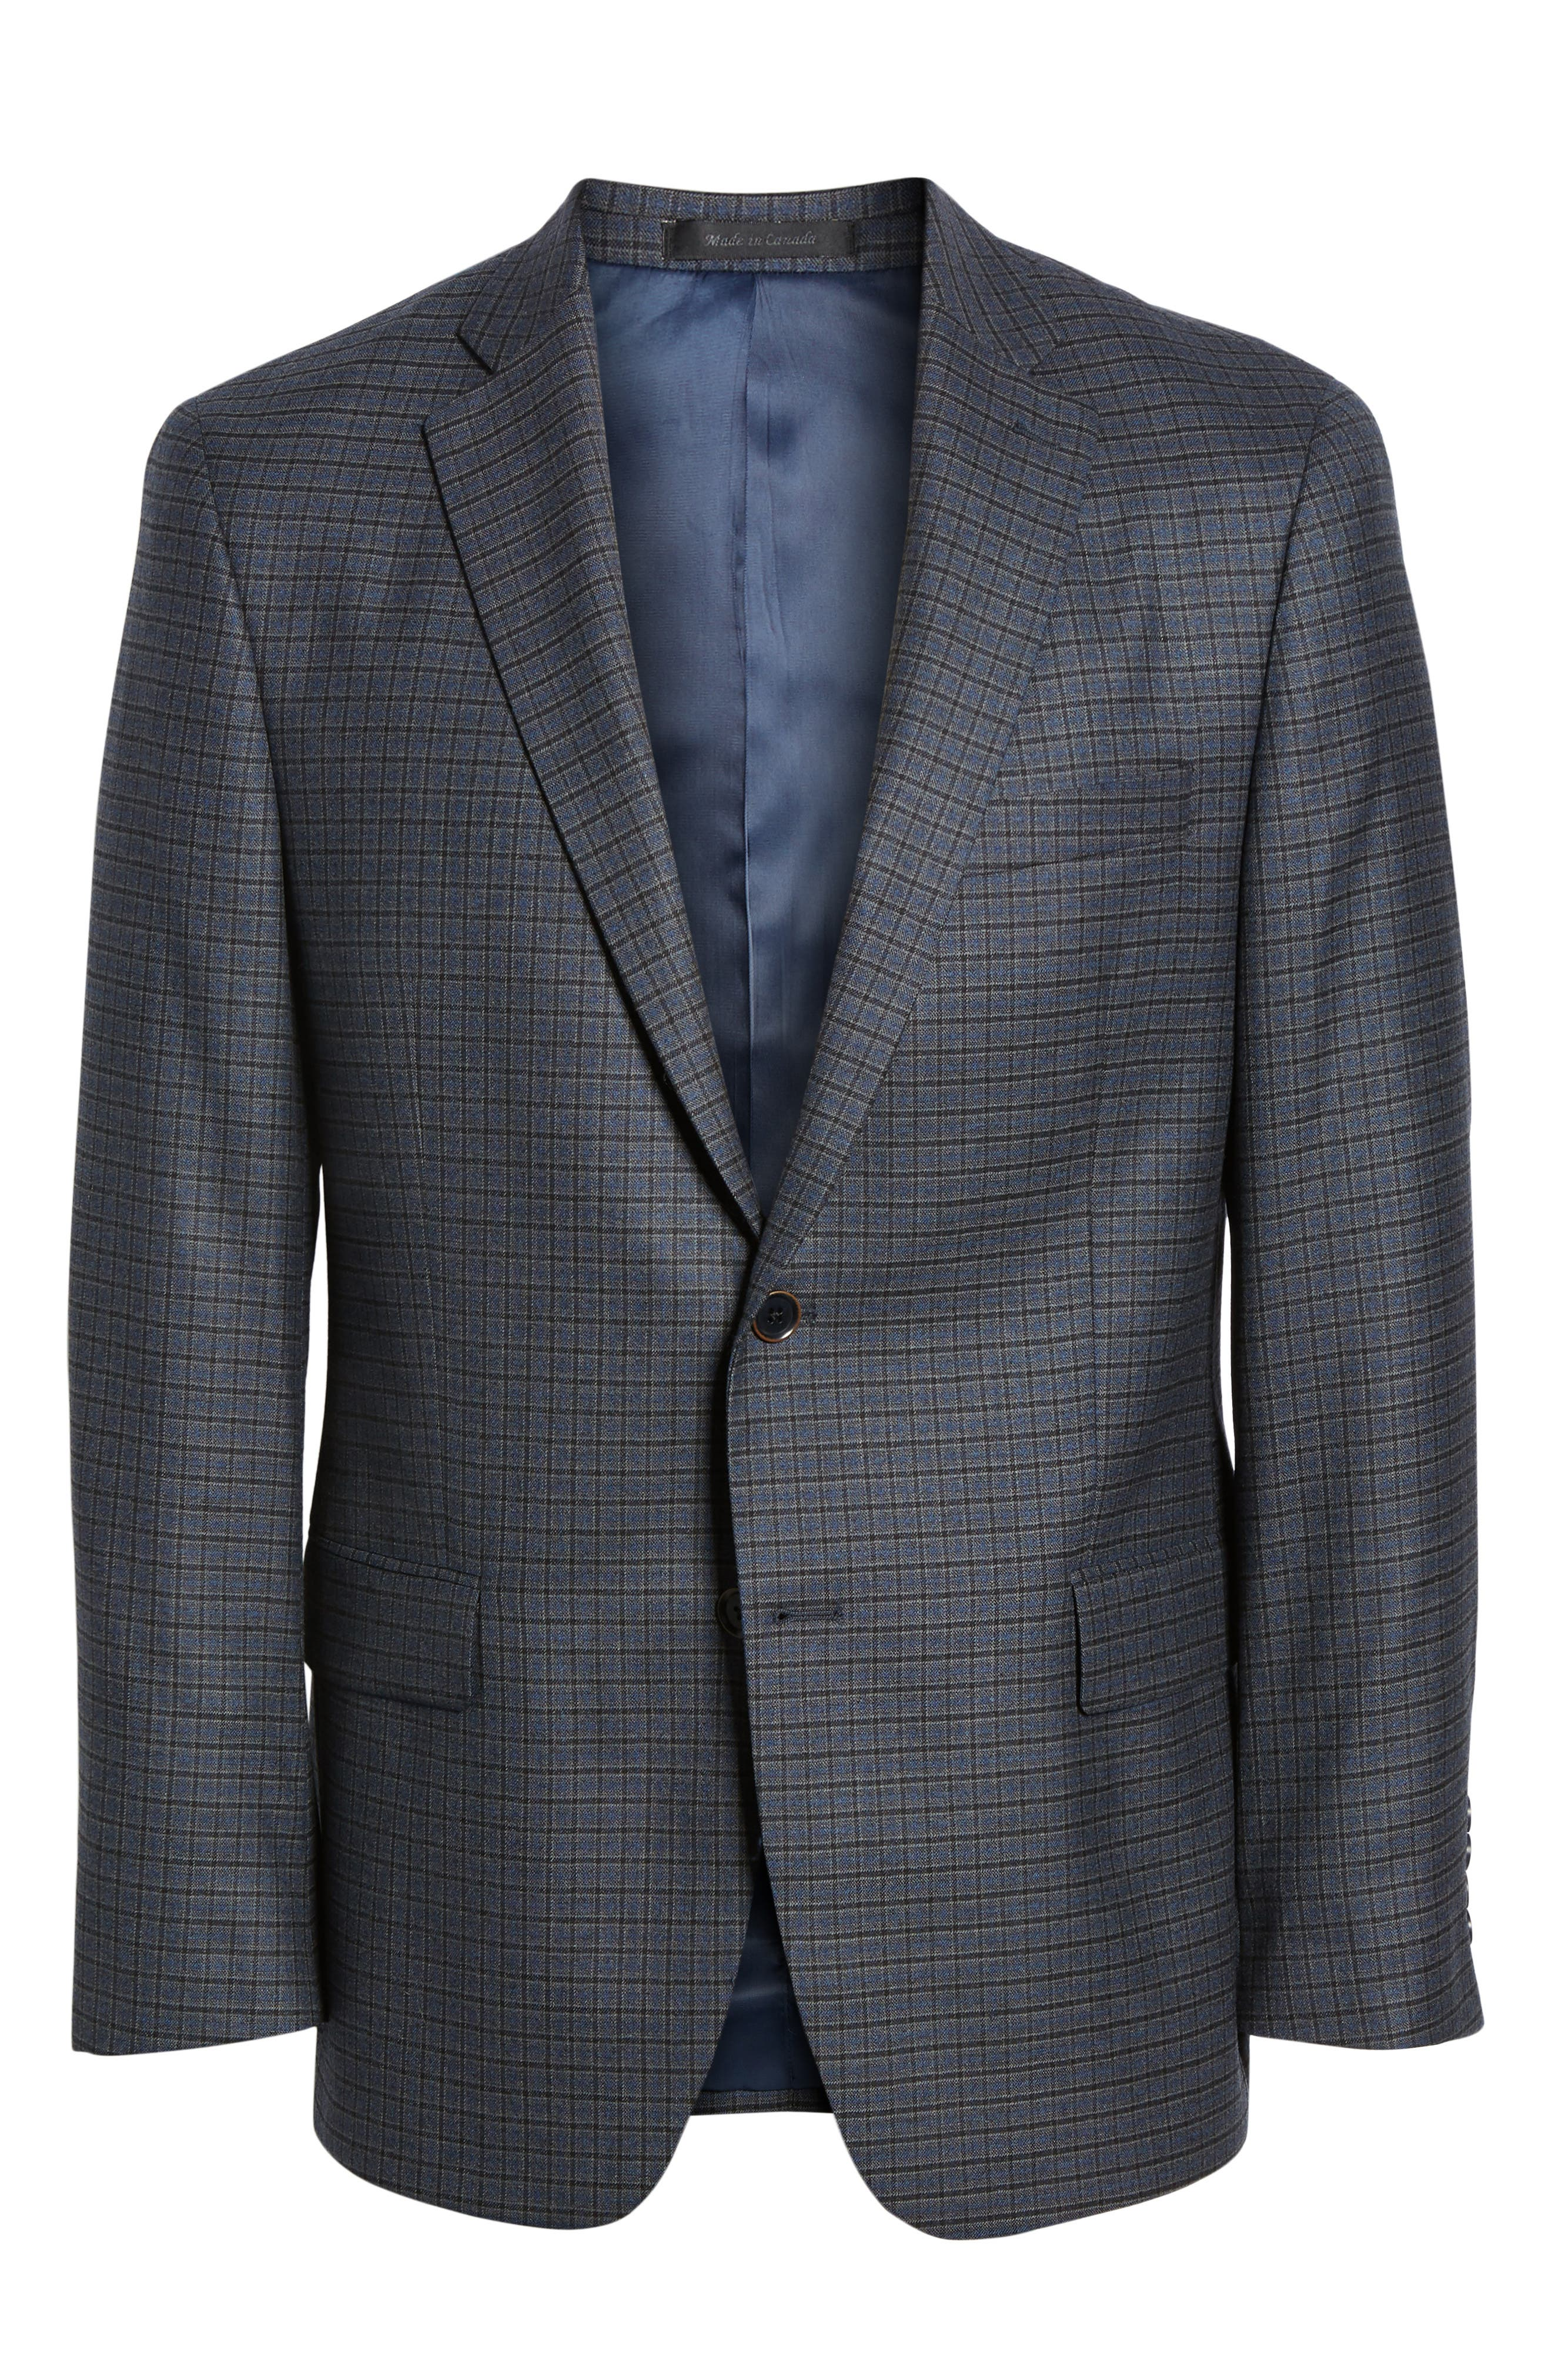 HART SCHAFFNER MARX,                             Classic Fit Stretch Check Wool Sport Coat,                             Alternate thumbnail 5, color,                             420